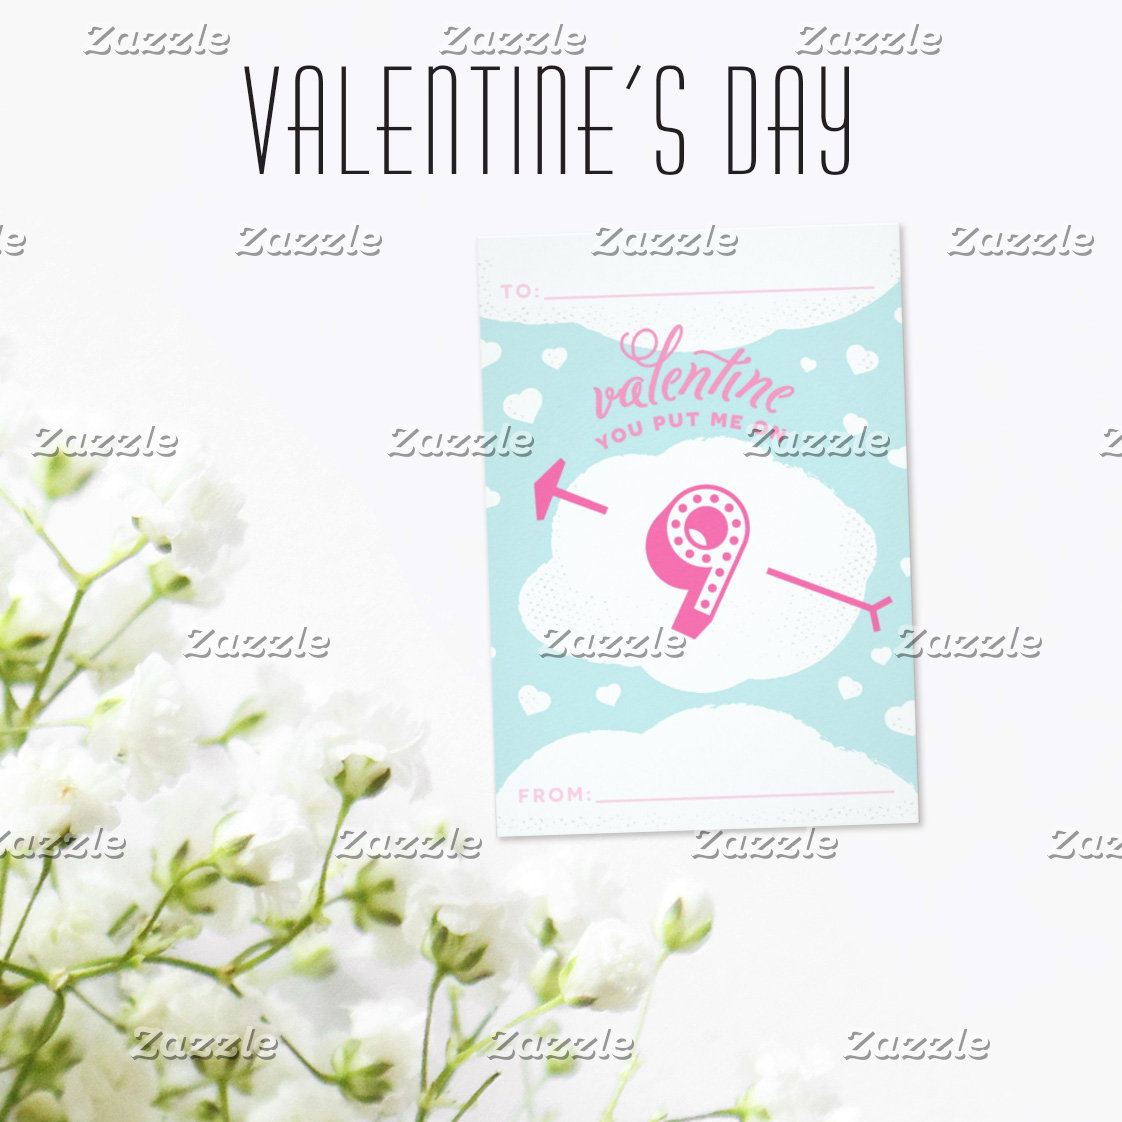 Valentines Cards and Gifts